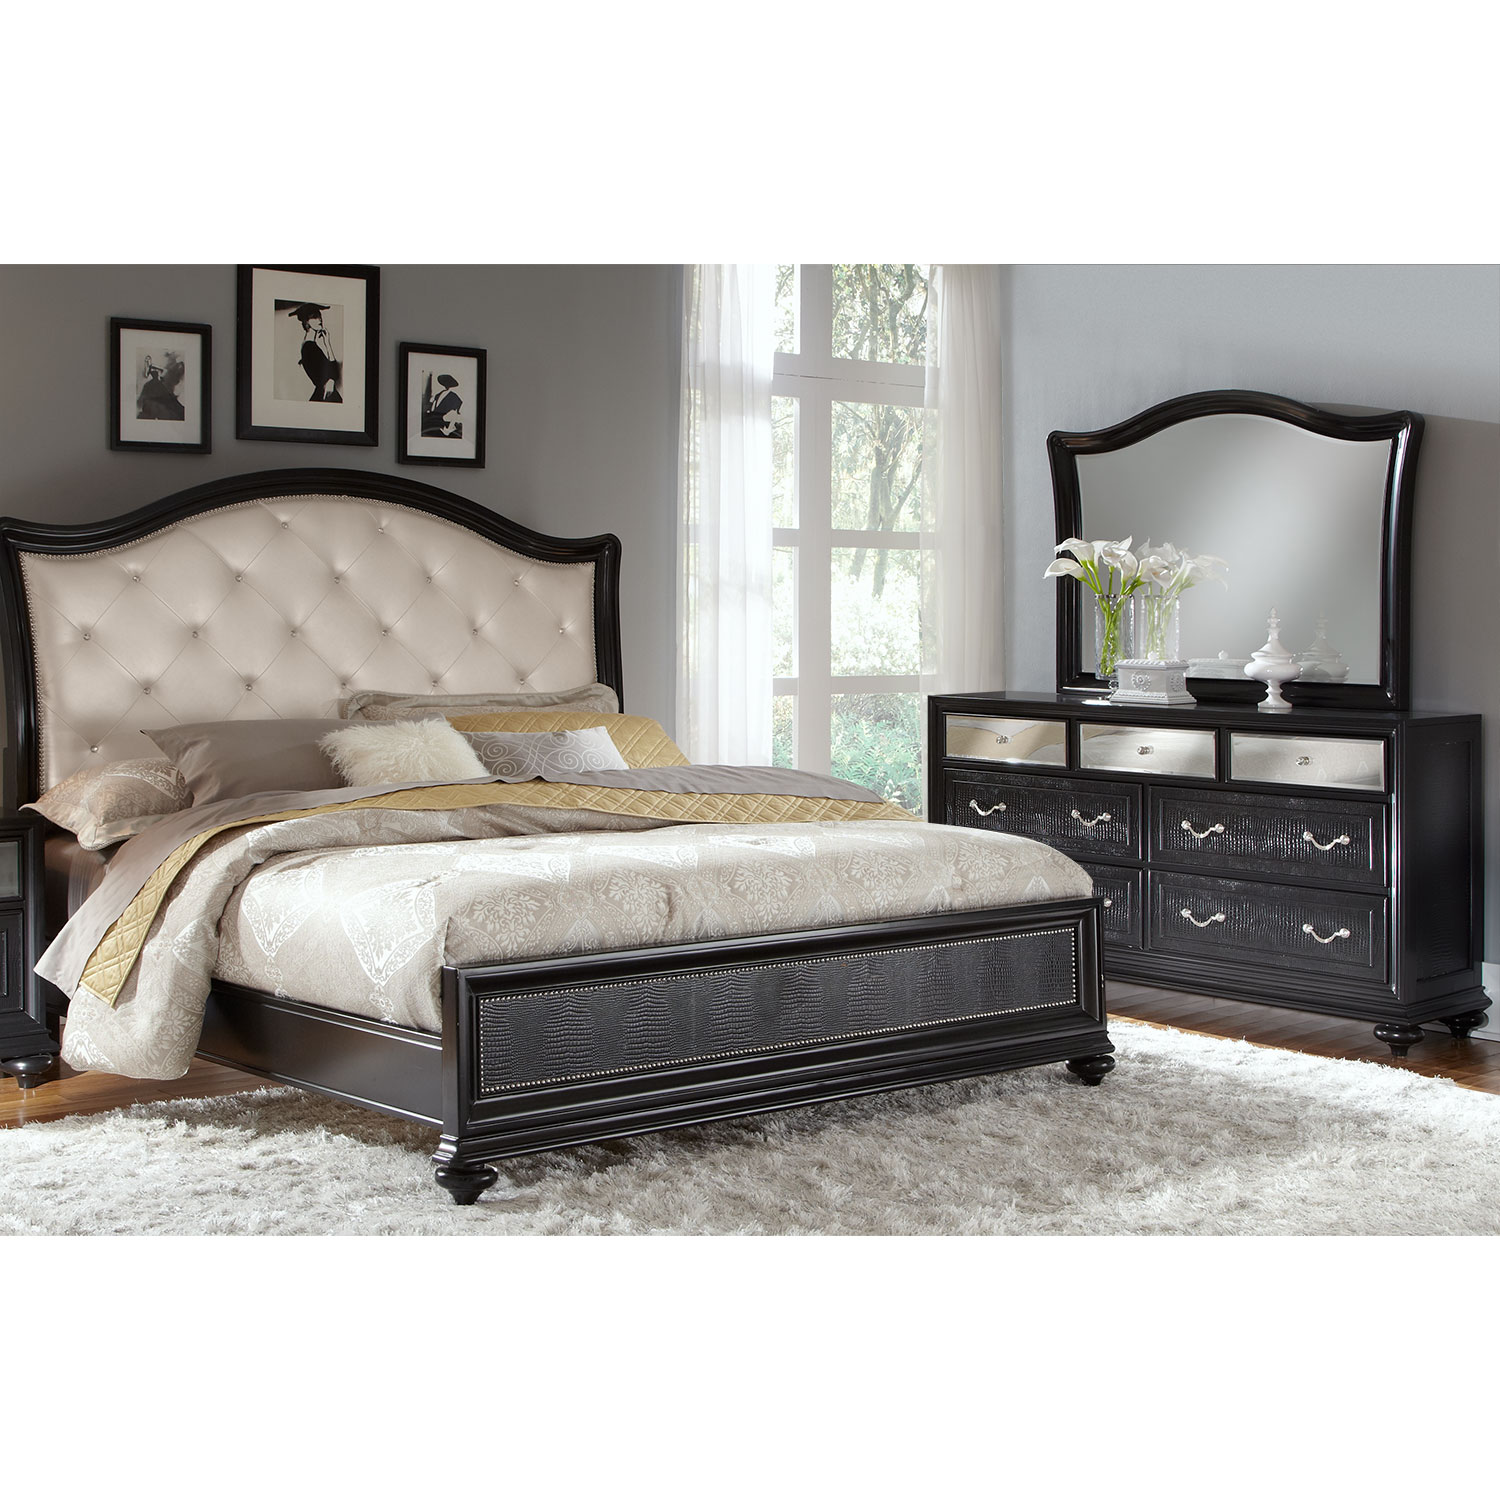 Marilyn 5 piece queen bedroom set ebony american - Black queen bedroom furniture set ...